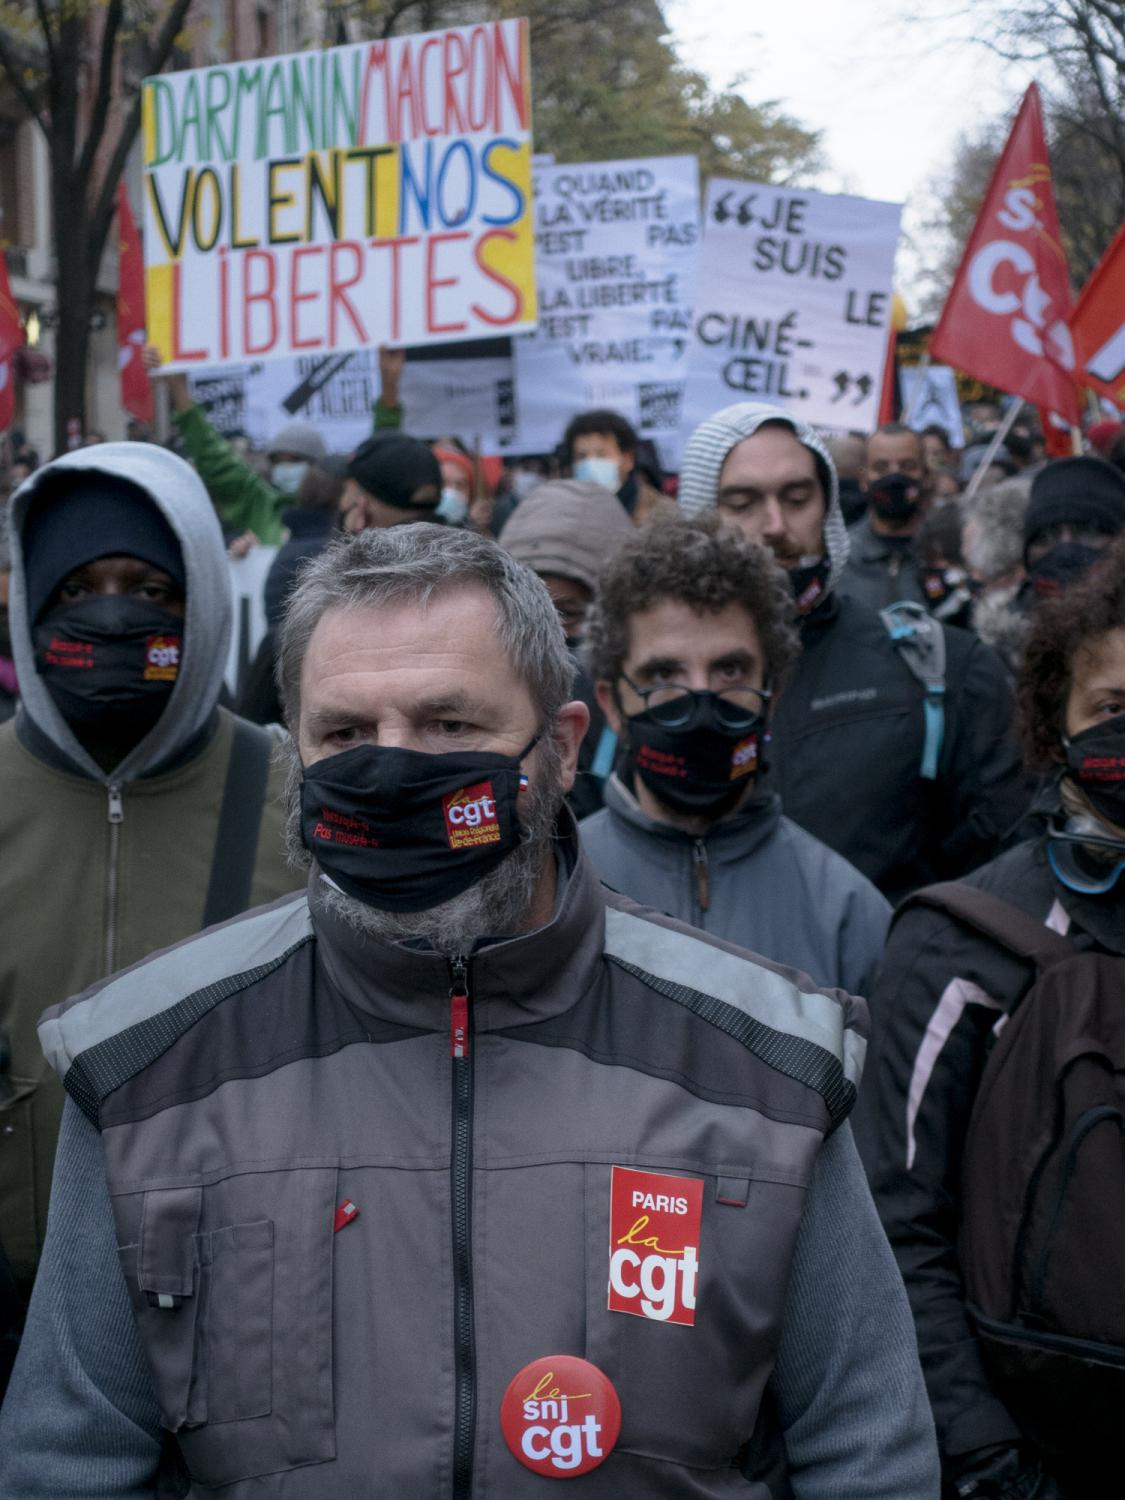 """The journalists' unions SNJ march against the so called """"Sécurité Globale"""" (Global Security) bill during a march in Paris. Gambetta avenue, Paris, France, the 5th of December 2020."""